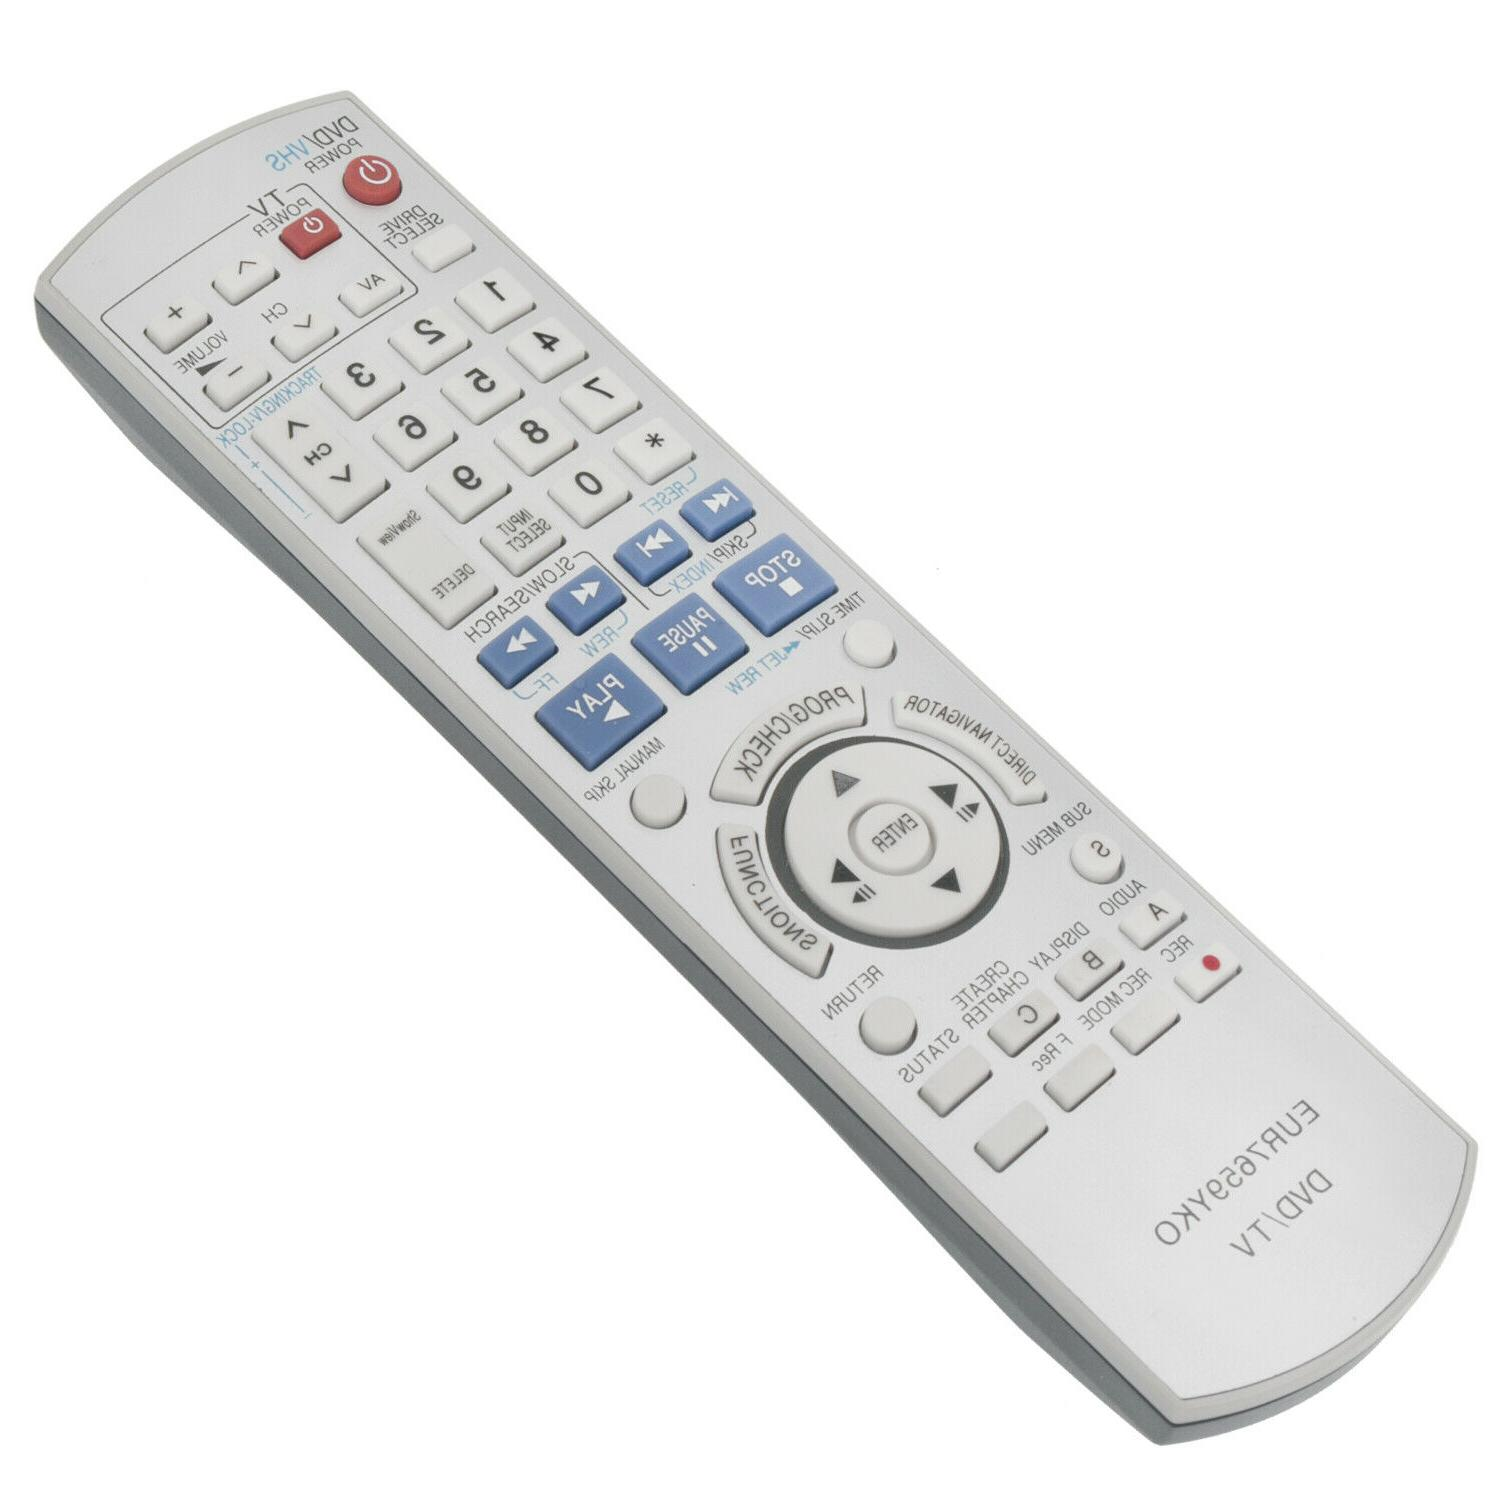 New DVD Remote Control EUR7659YKO Replace for Panasonic Play